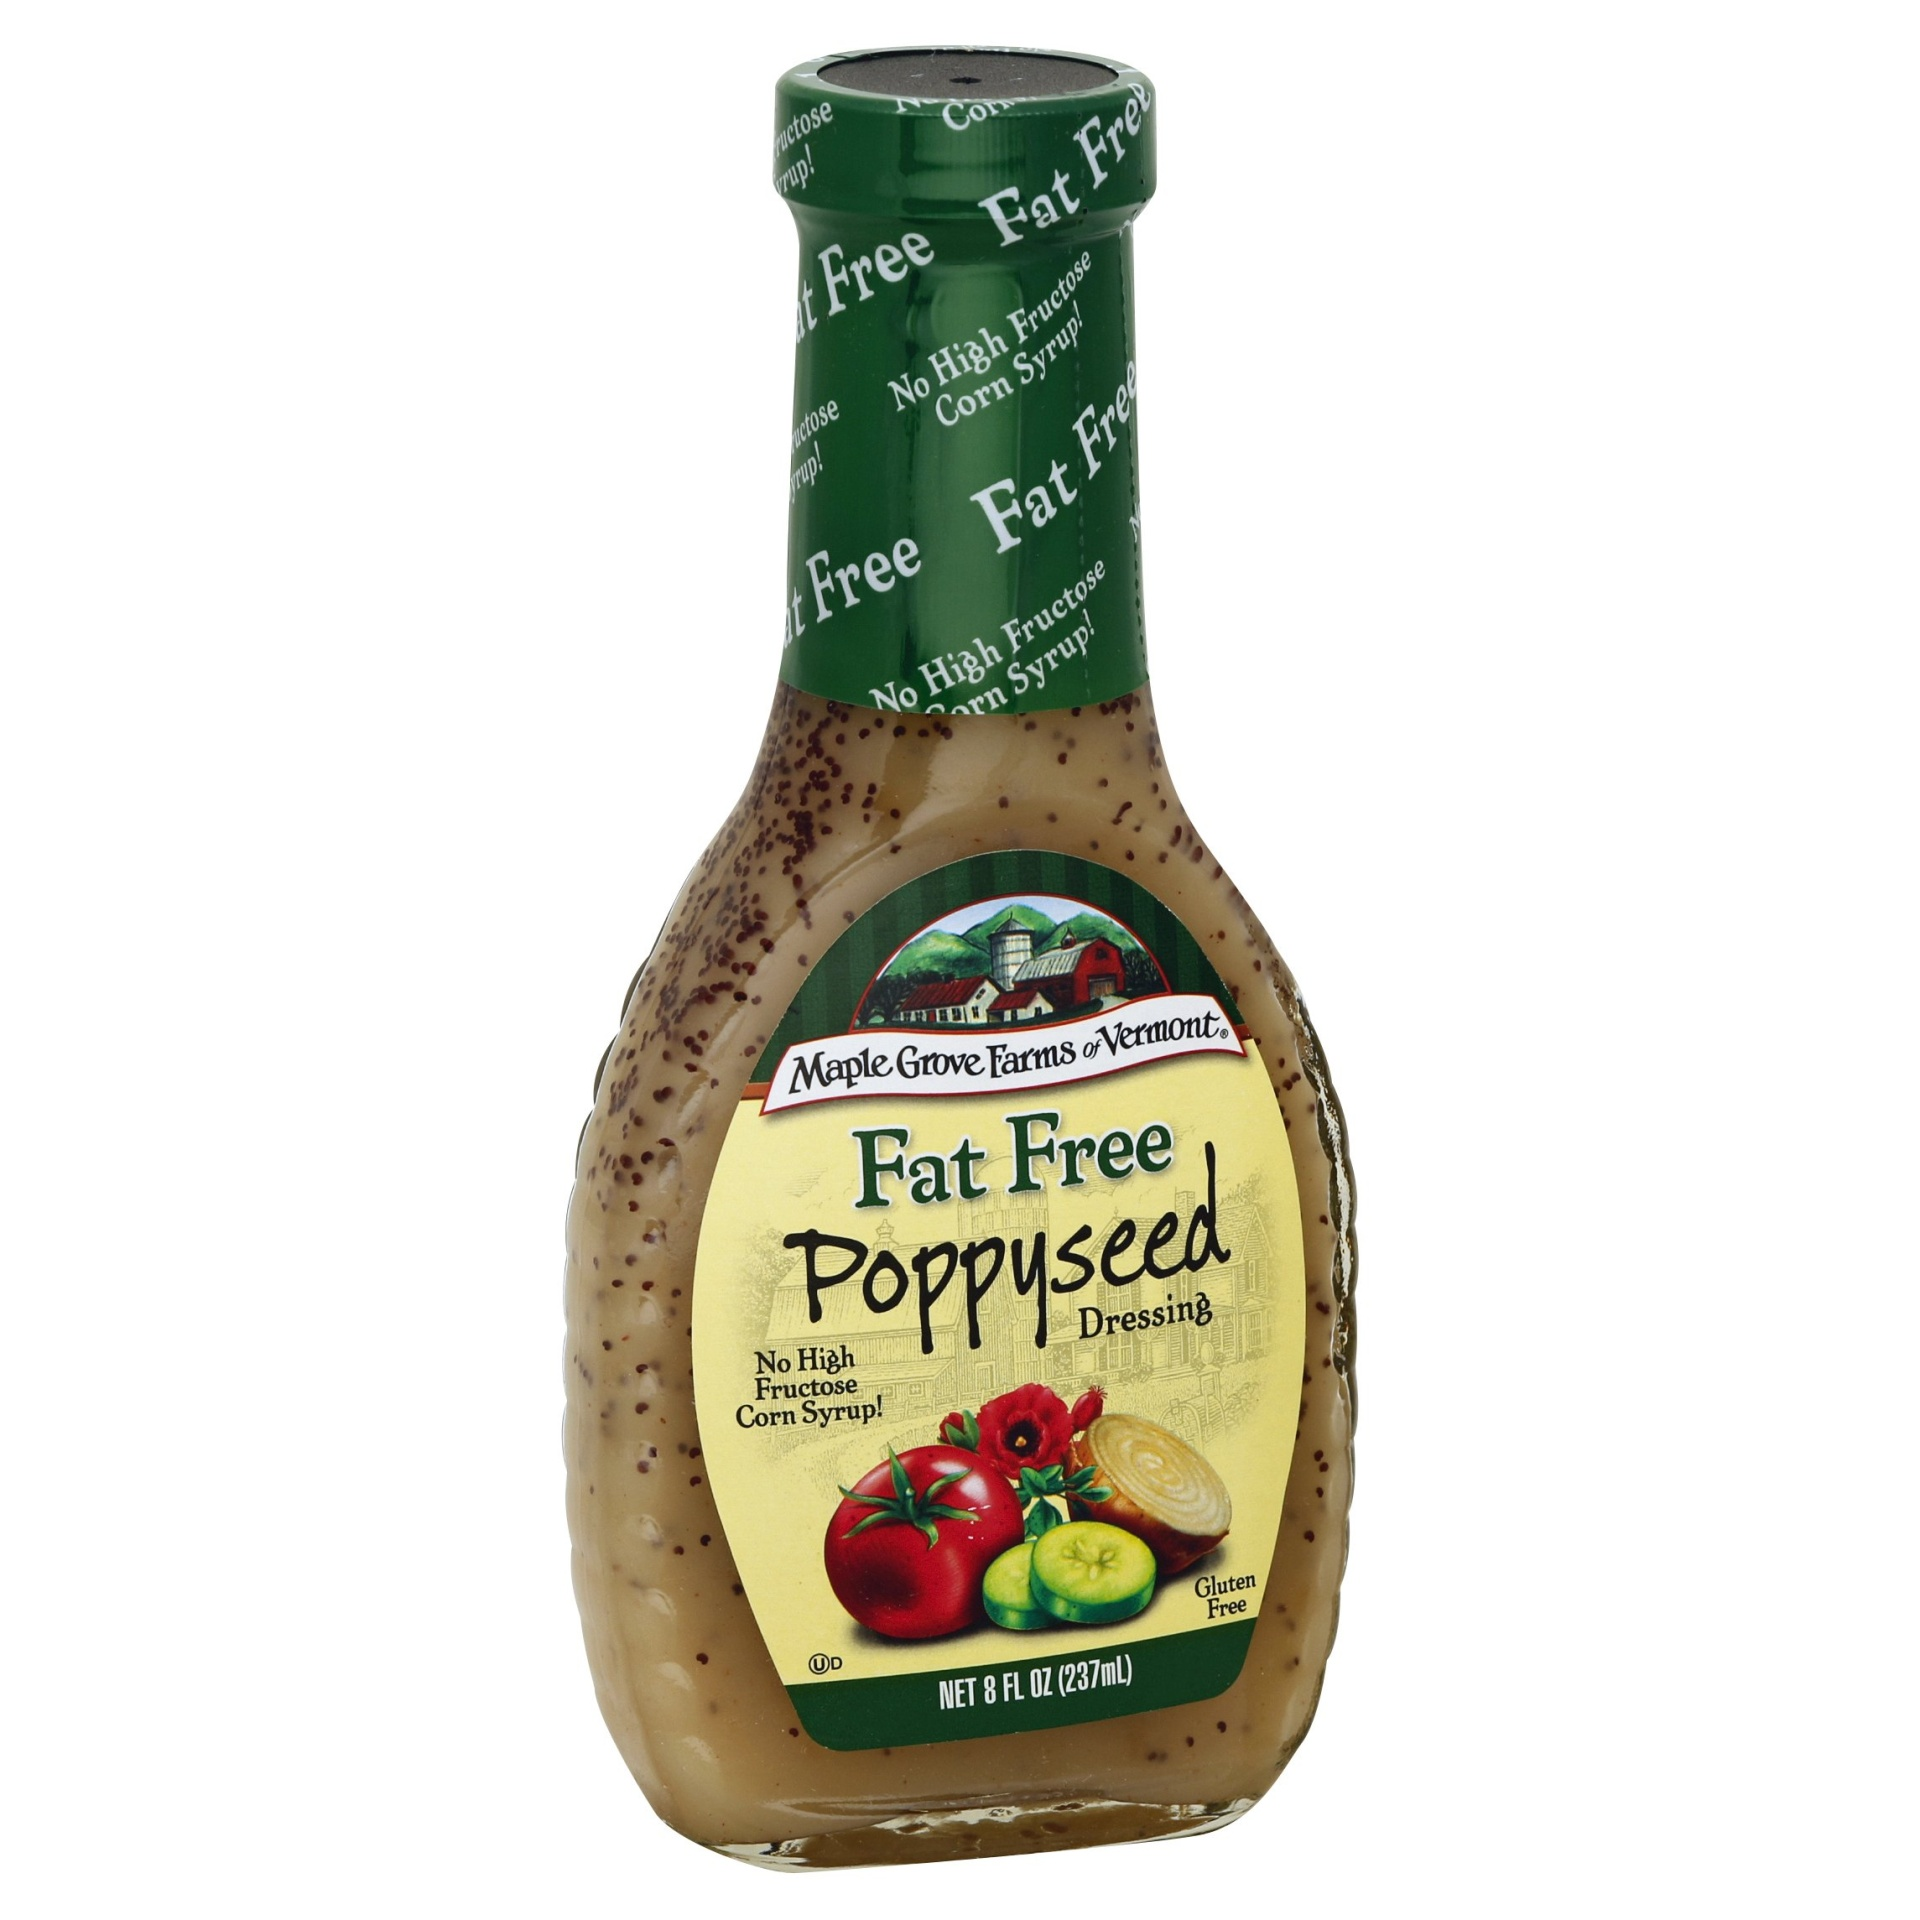 slide 1 of 3, Maple Grove Farms Fat Free Poppyseed Dressing,